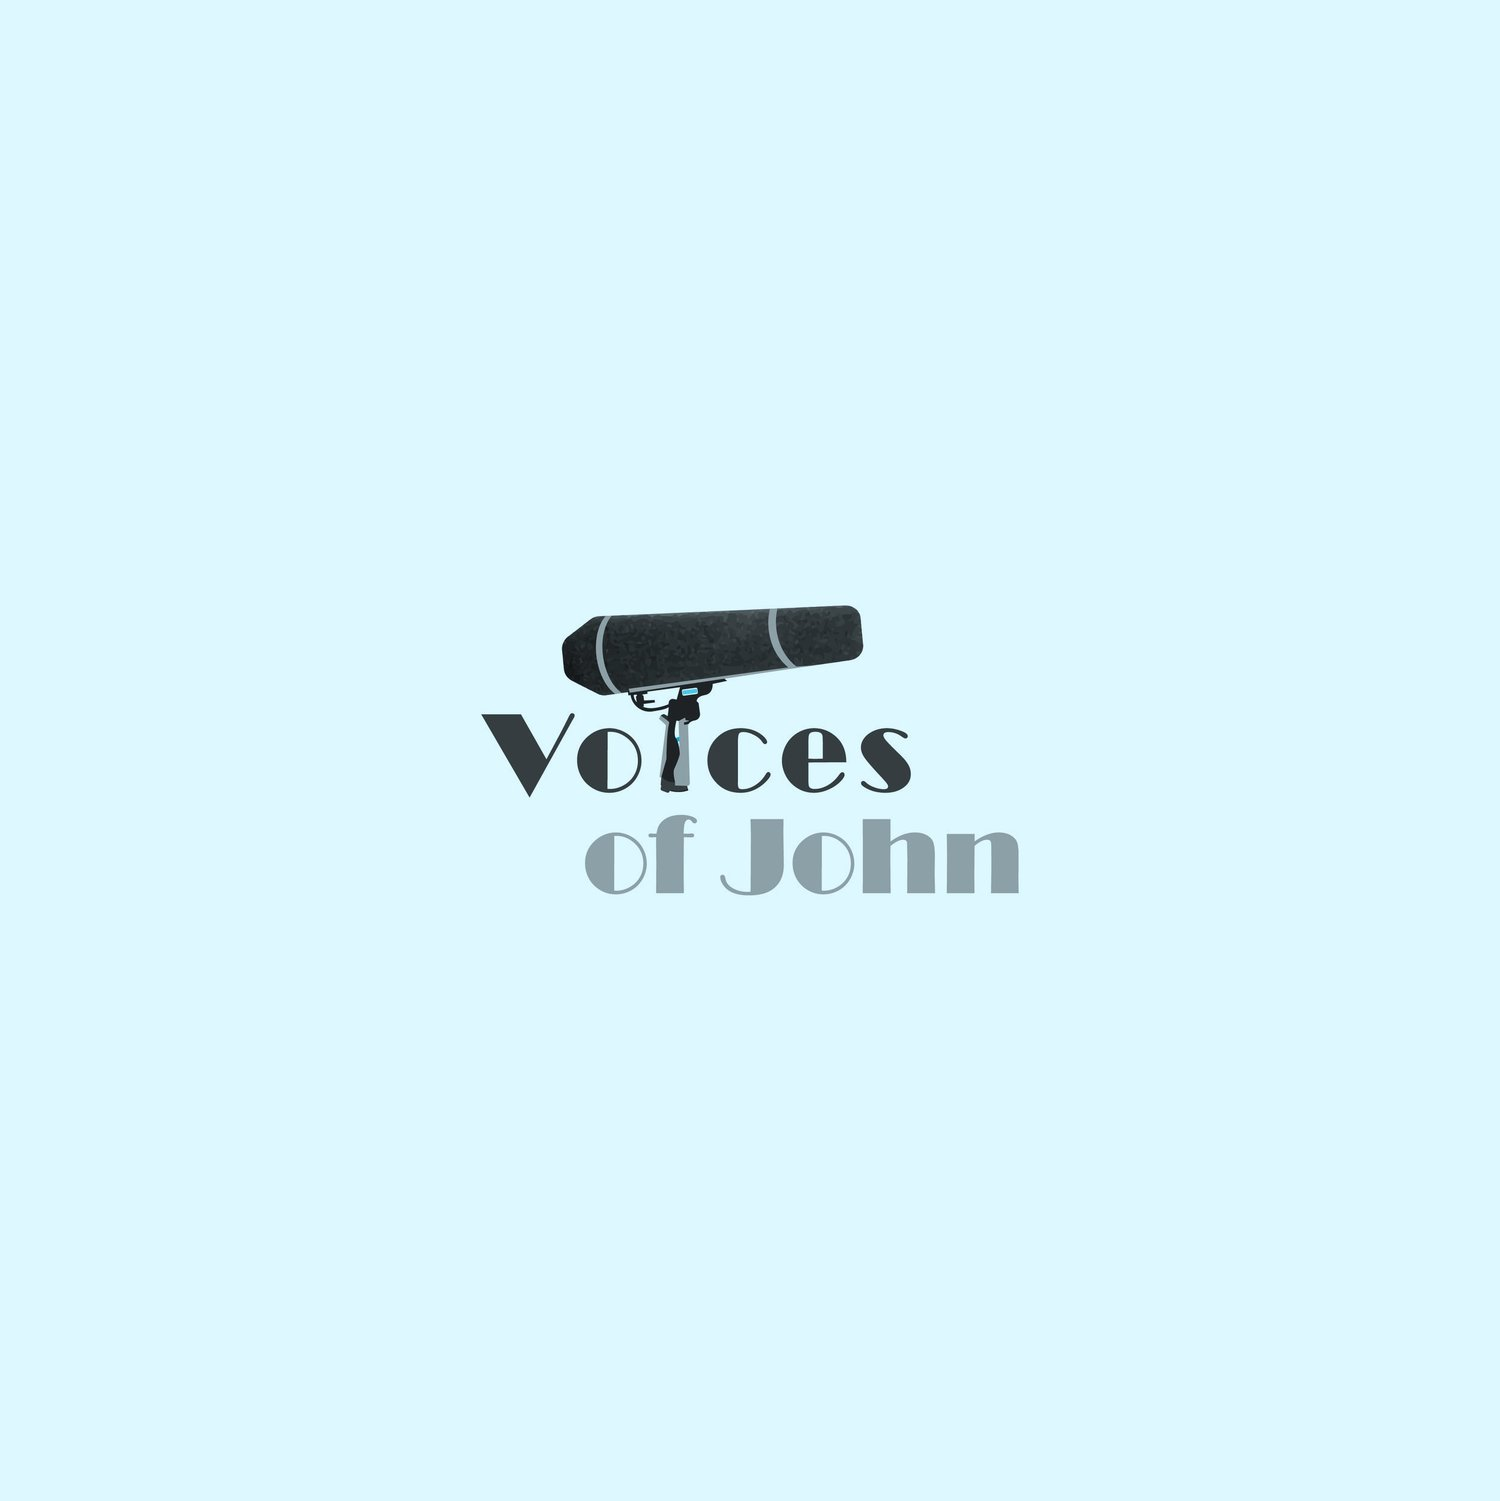 Voices of John